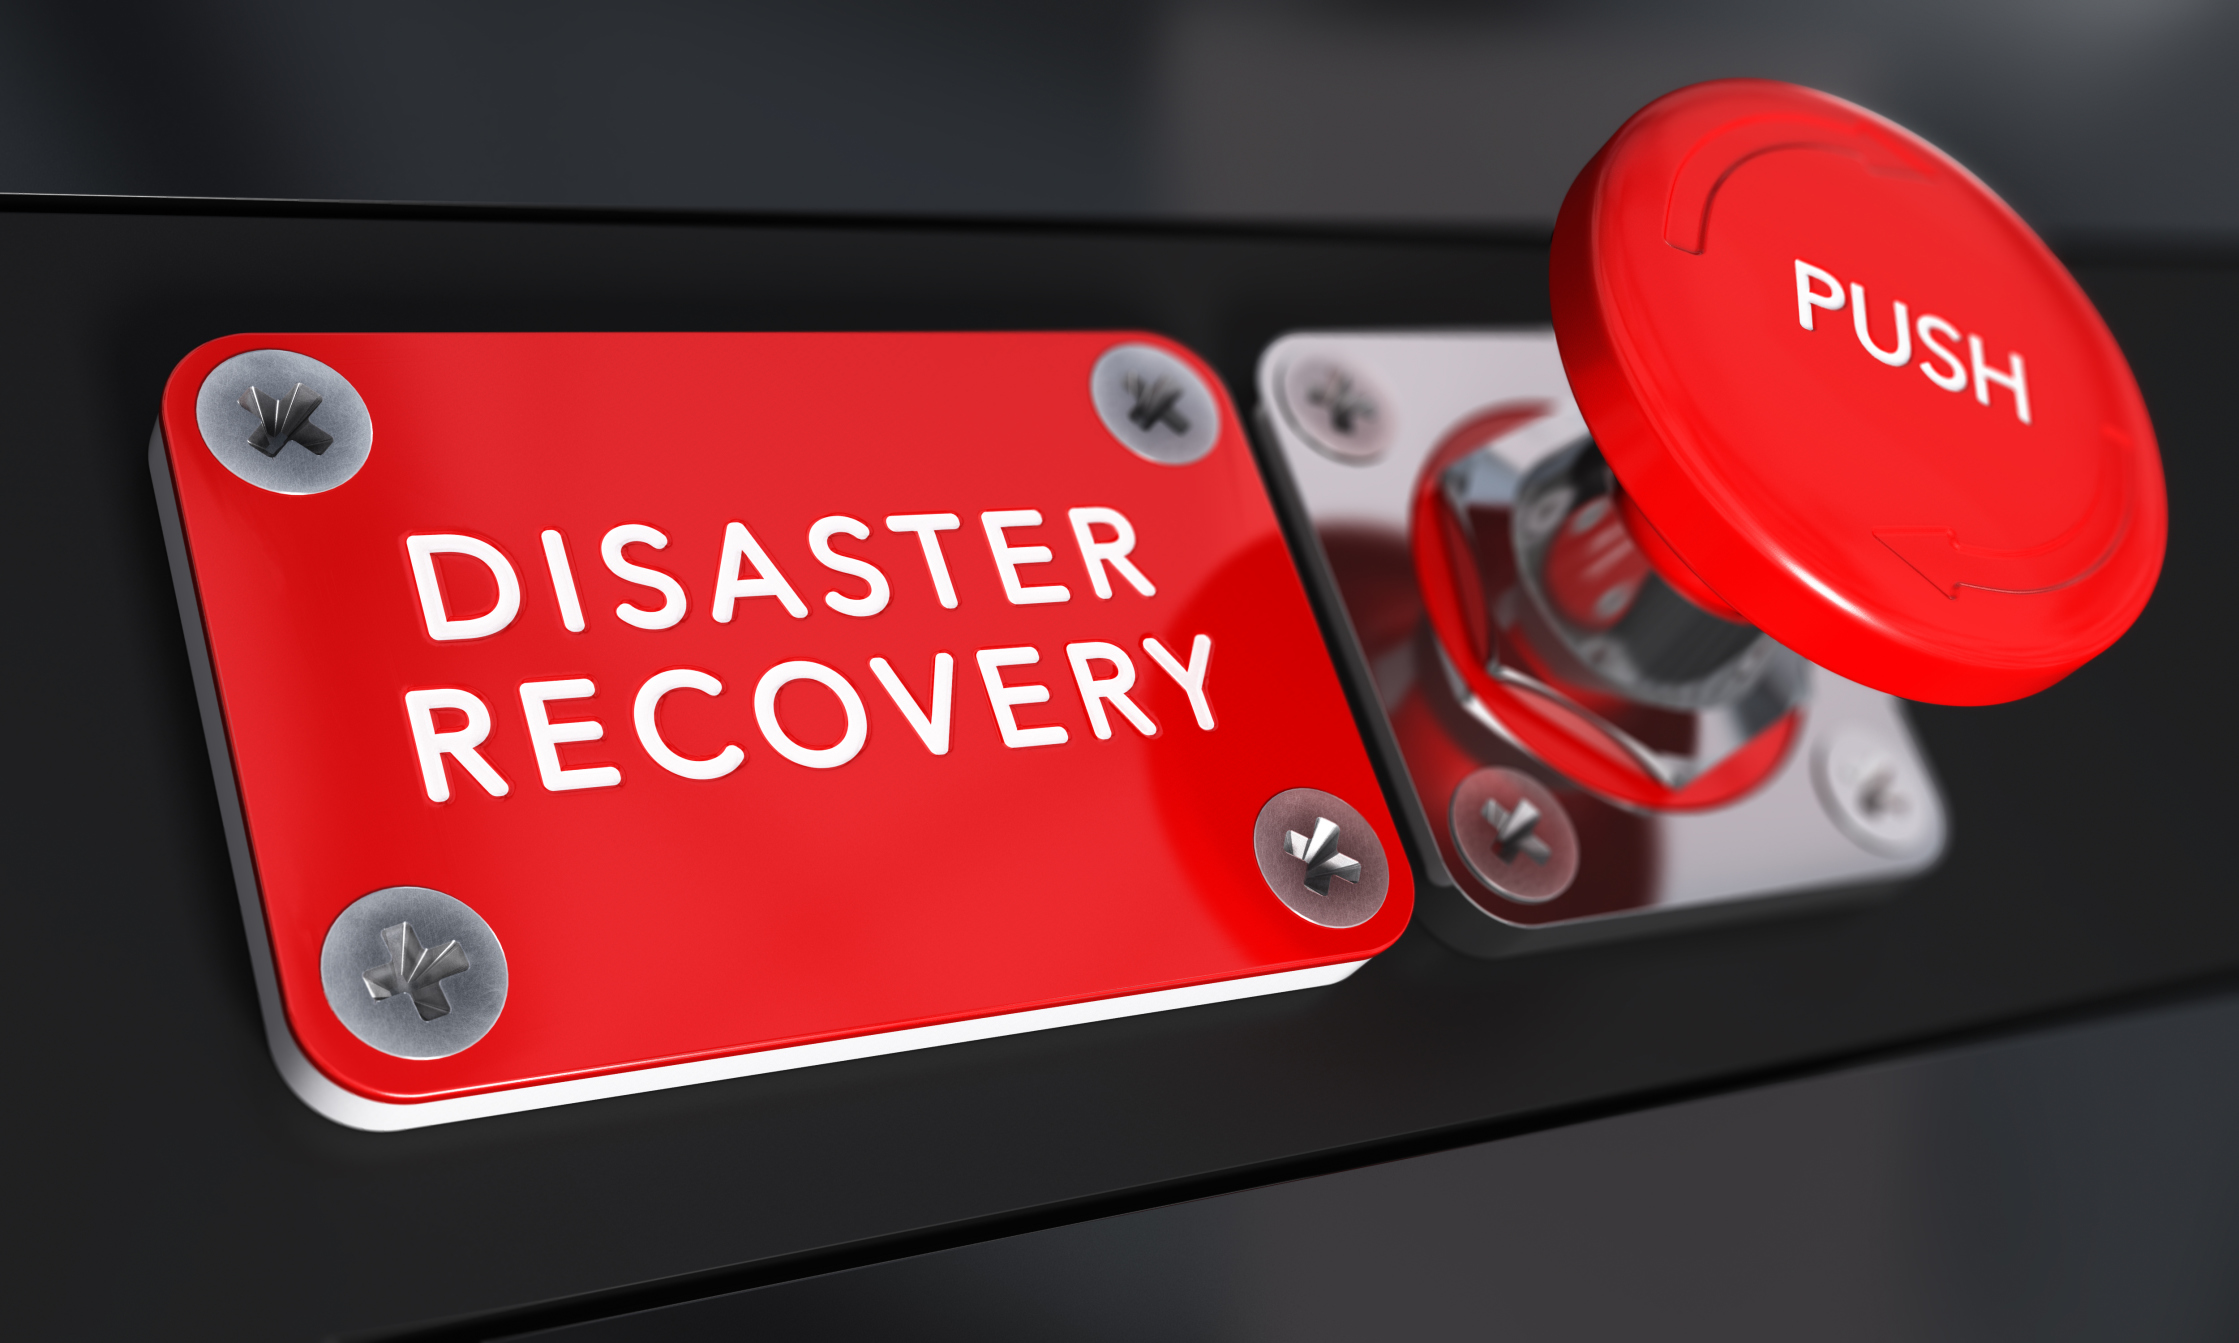 Click on DISASTER RECOVERY to contact ELECTROSTAR